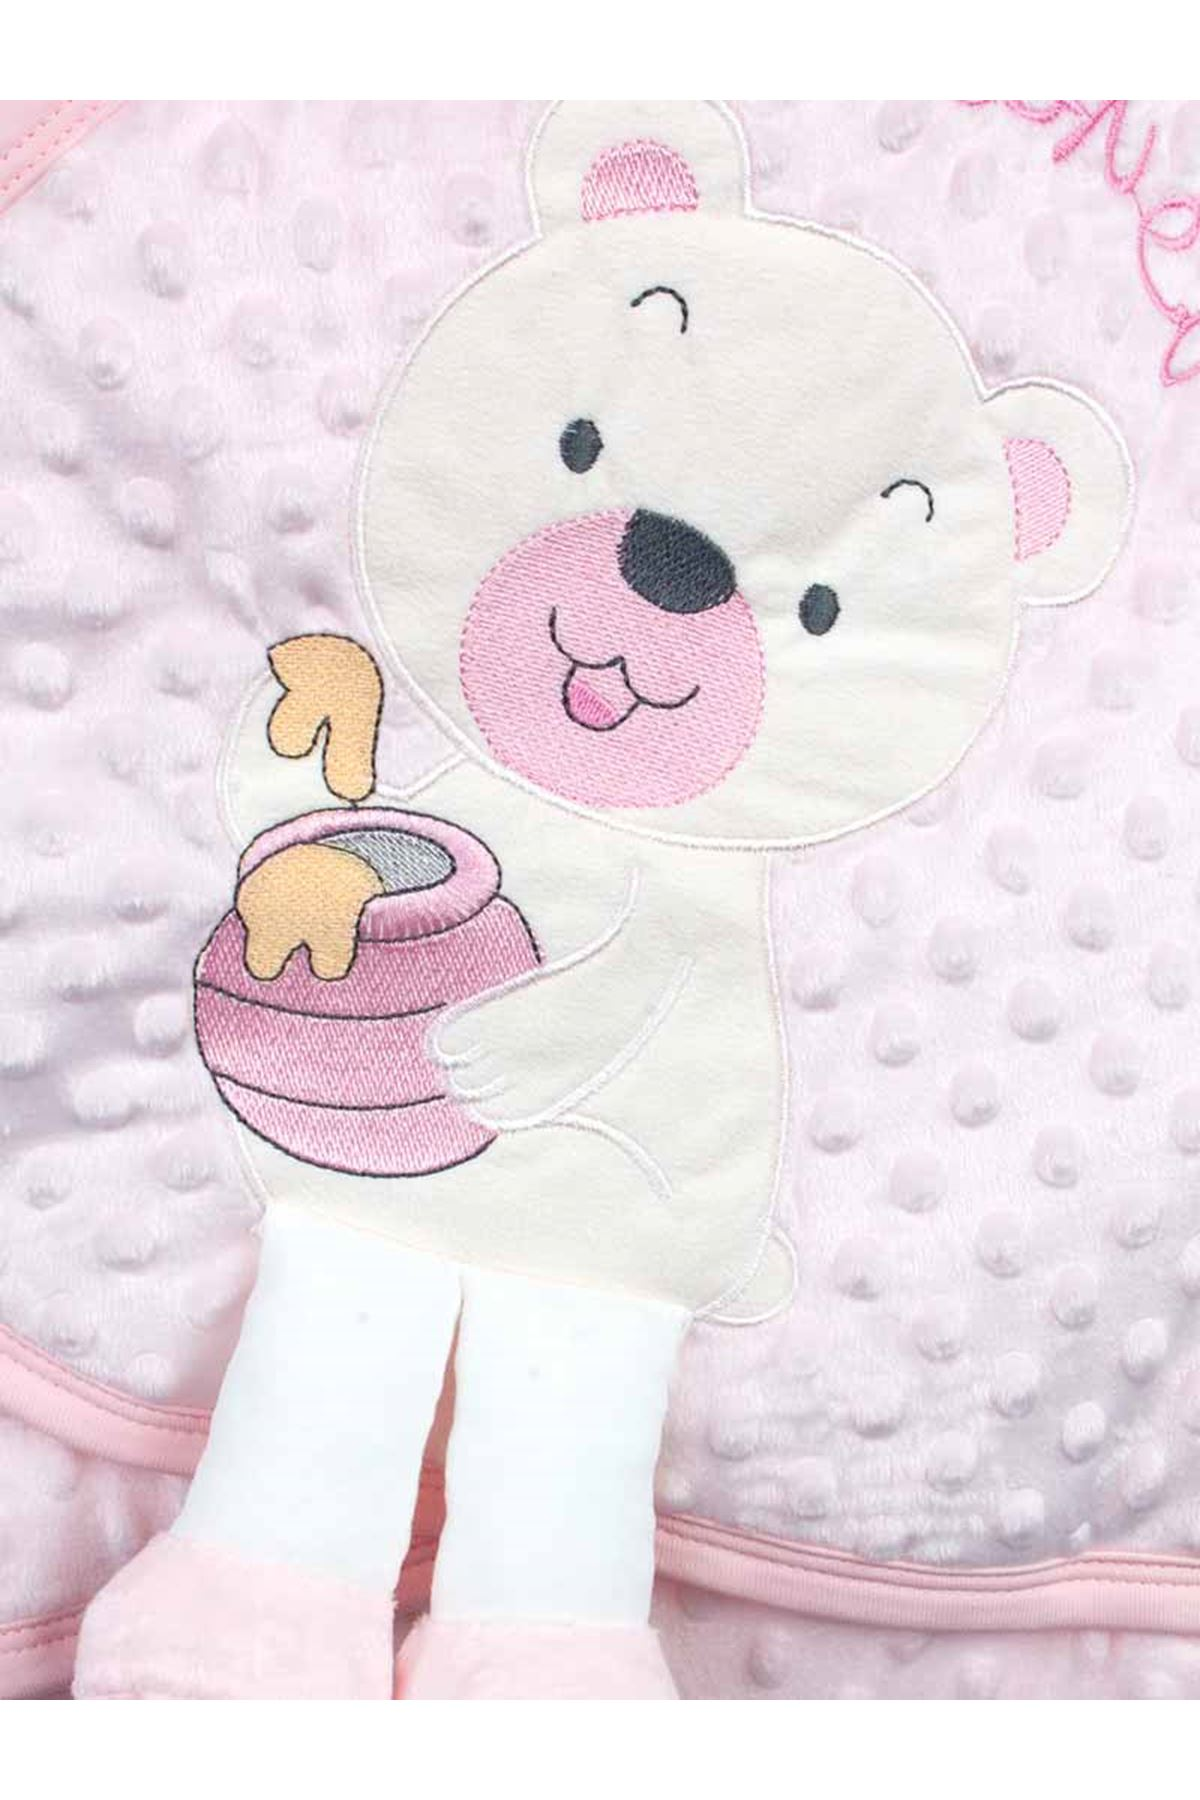 Pink Baby Girl Swaddle Hospital Outlet Newborn Teddy Chickpea Pattern Cotton Soft Baby Stroller Bed Models